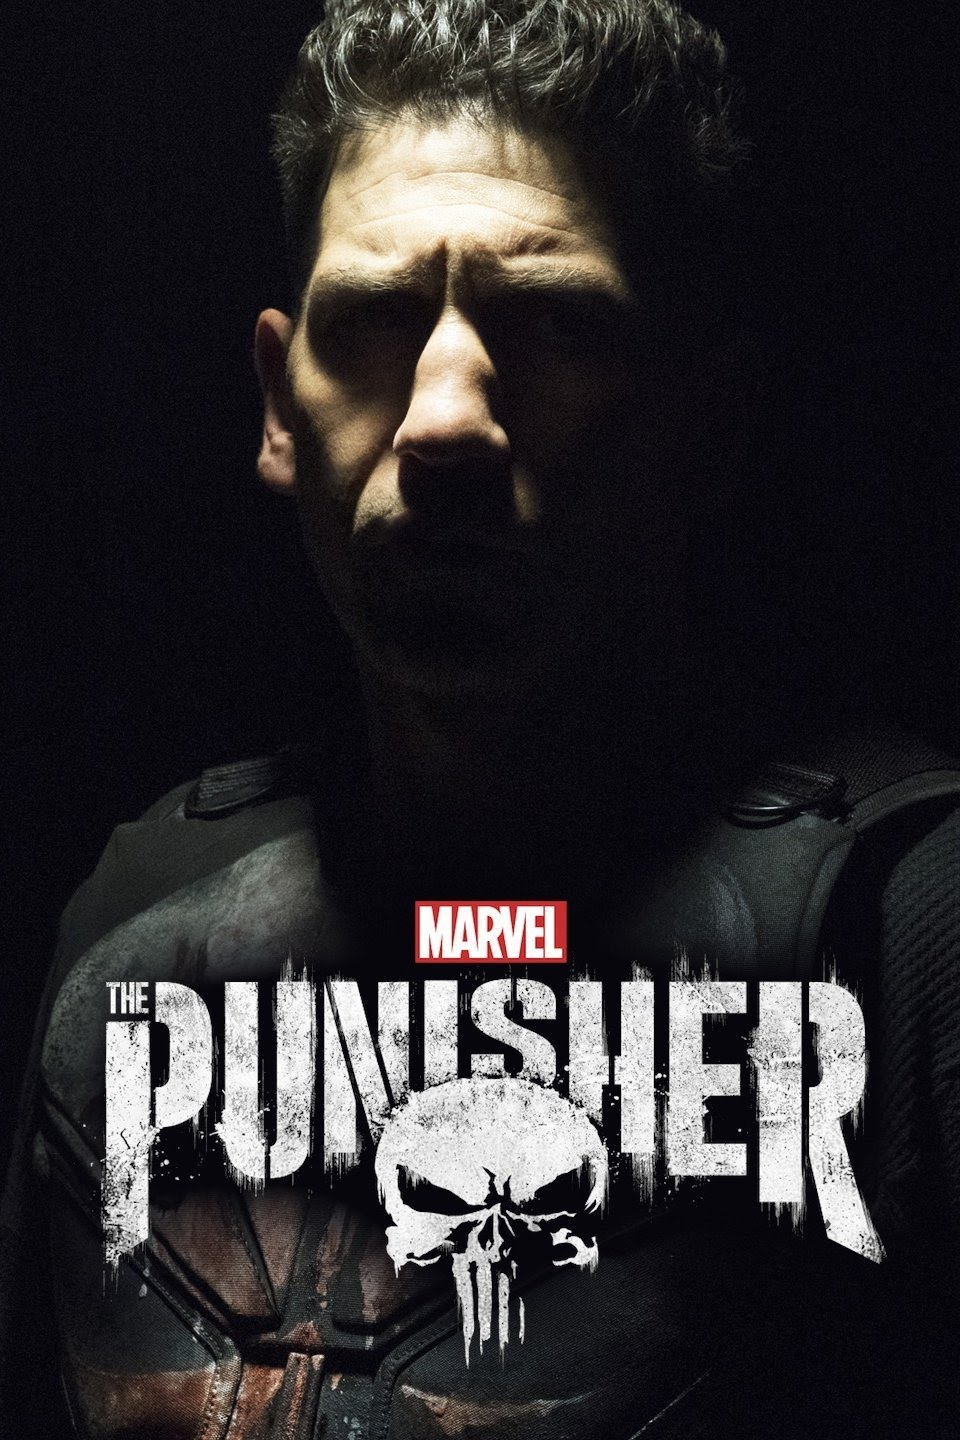 Marvel's The Punisher S01 E13 Cut